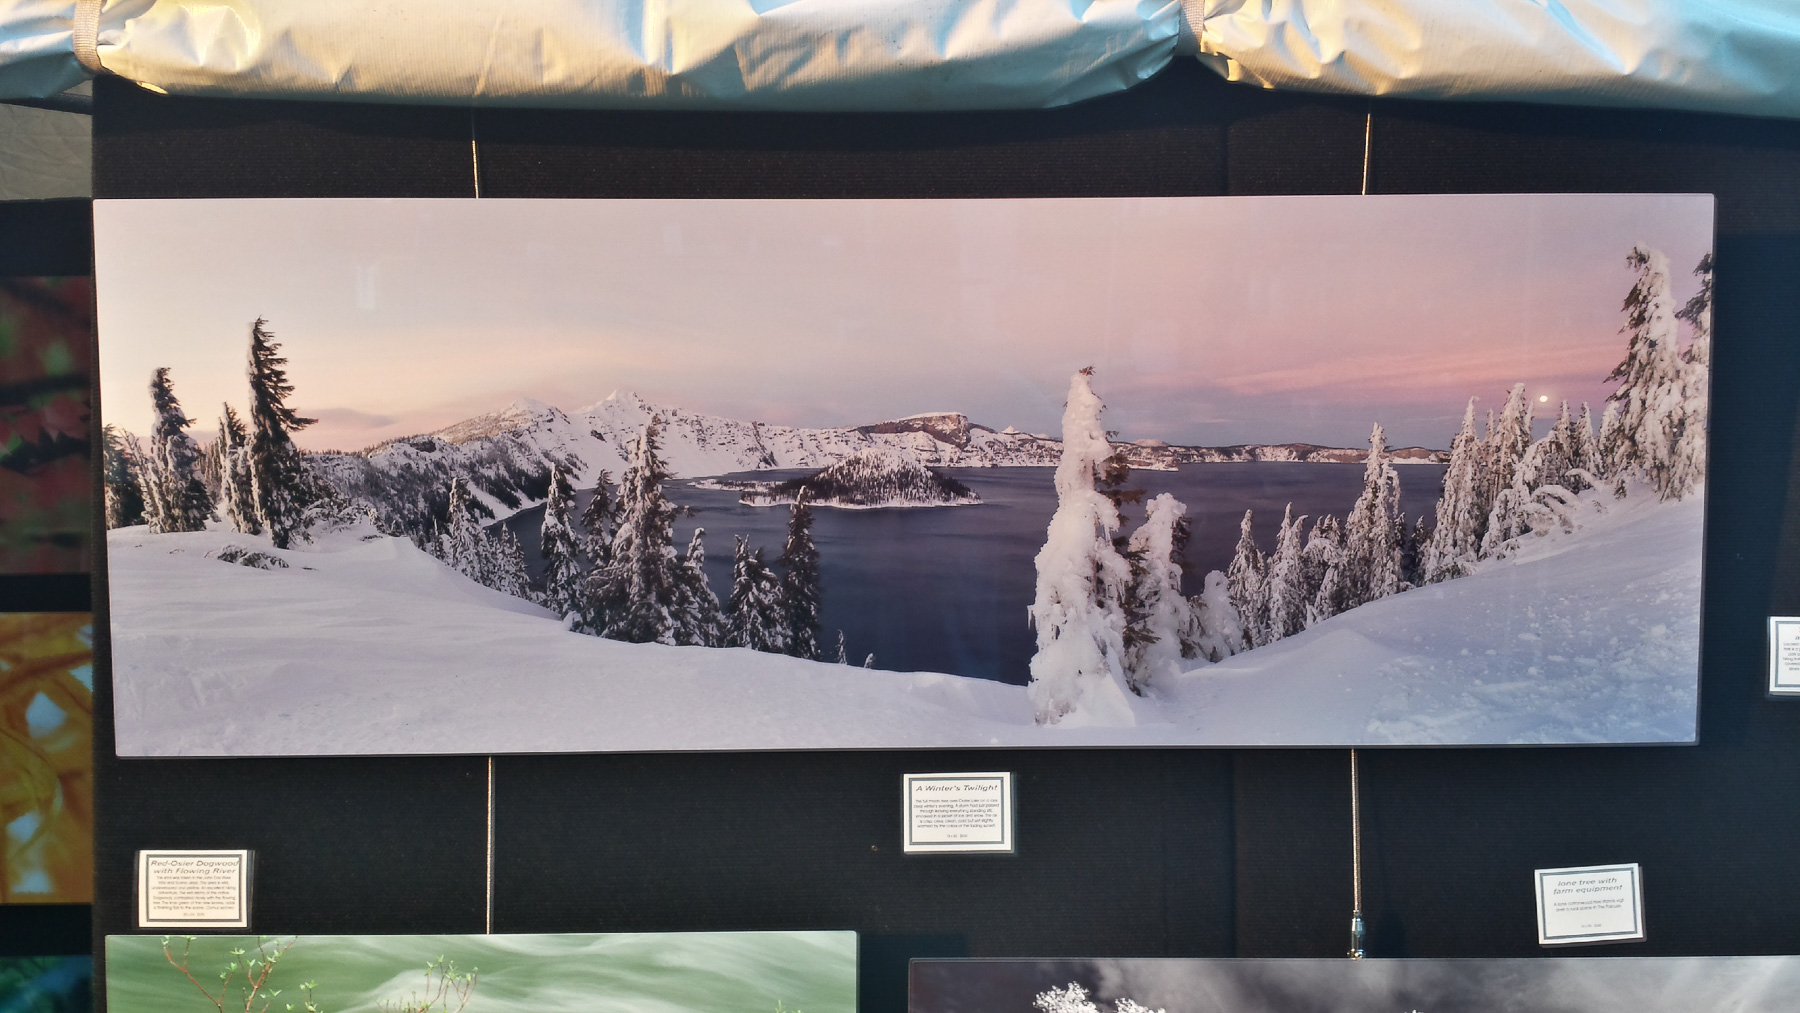 Large panorama lit up by late afternoon light at art show   Boise   ID   USA - ©  - All Rights Reserved Worldwide